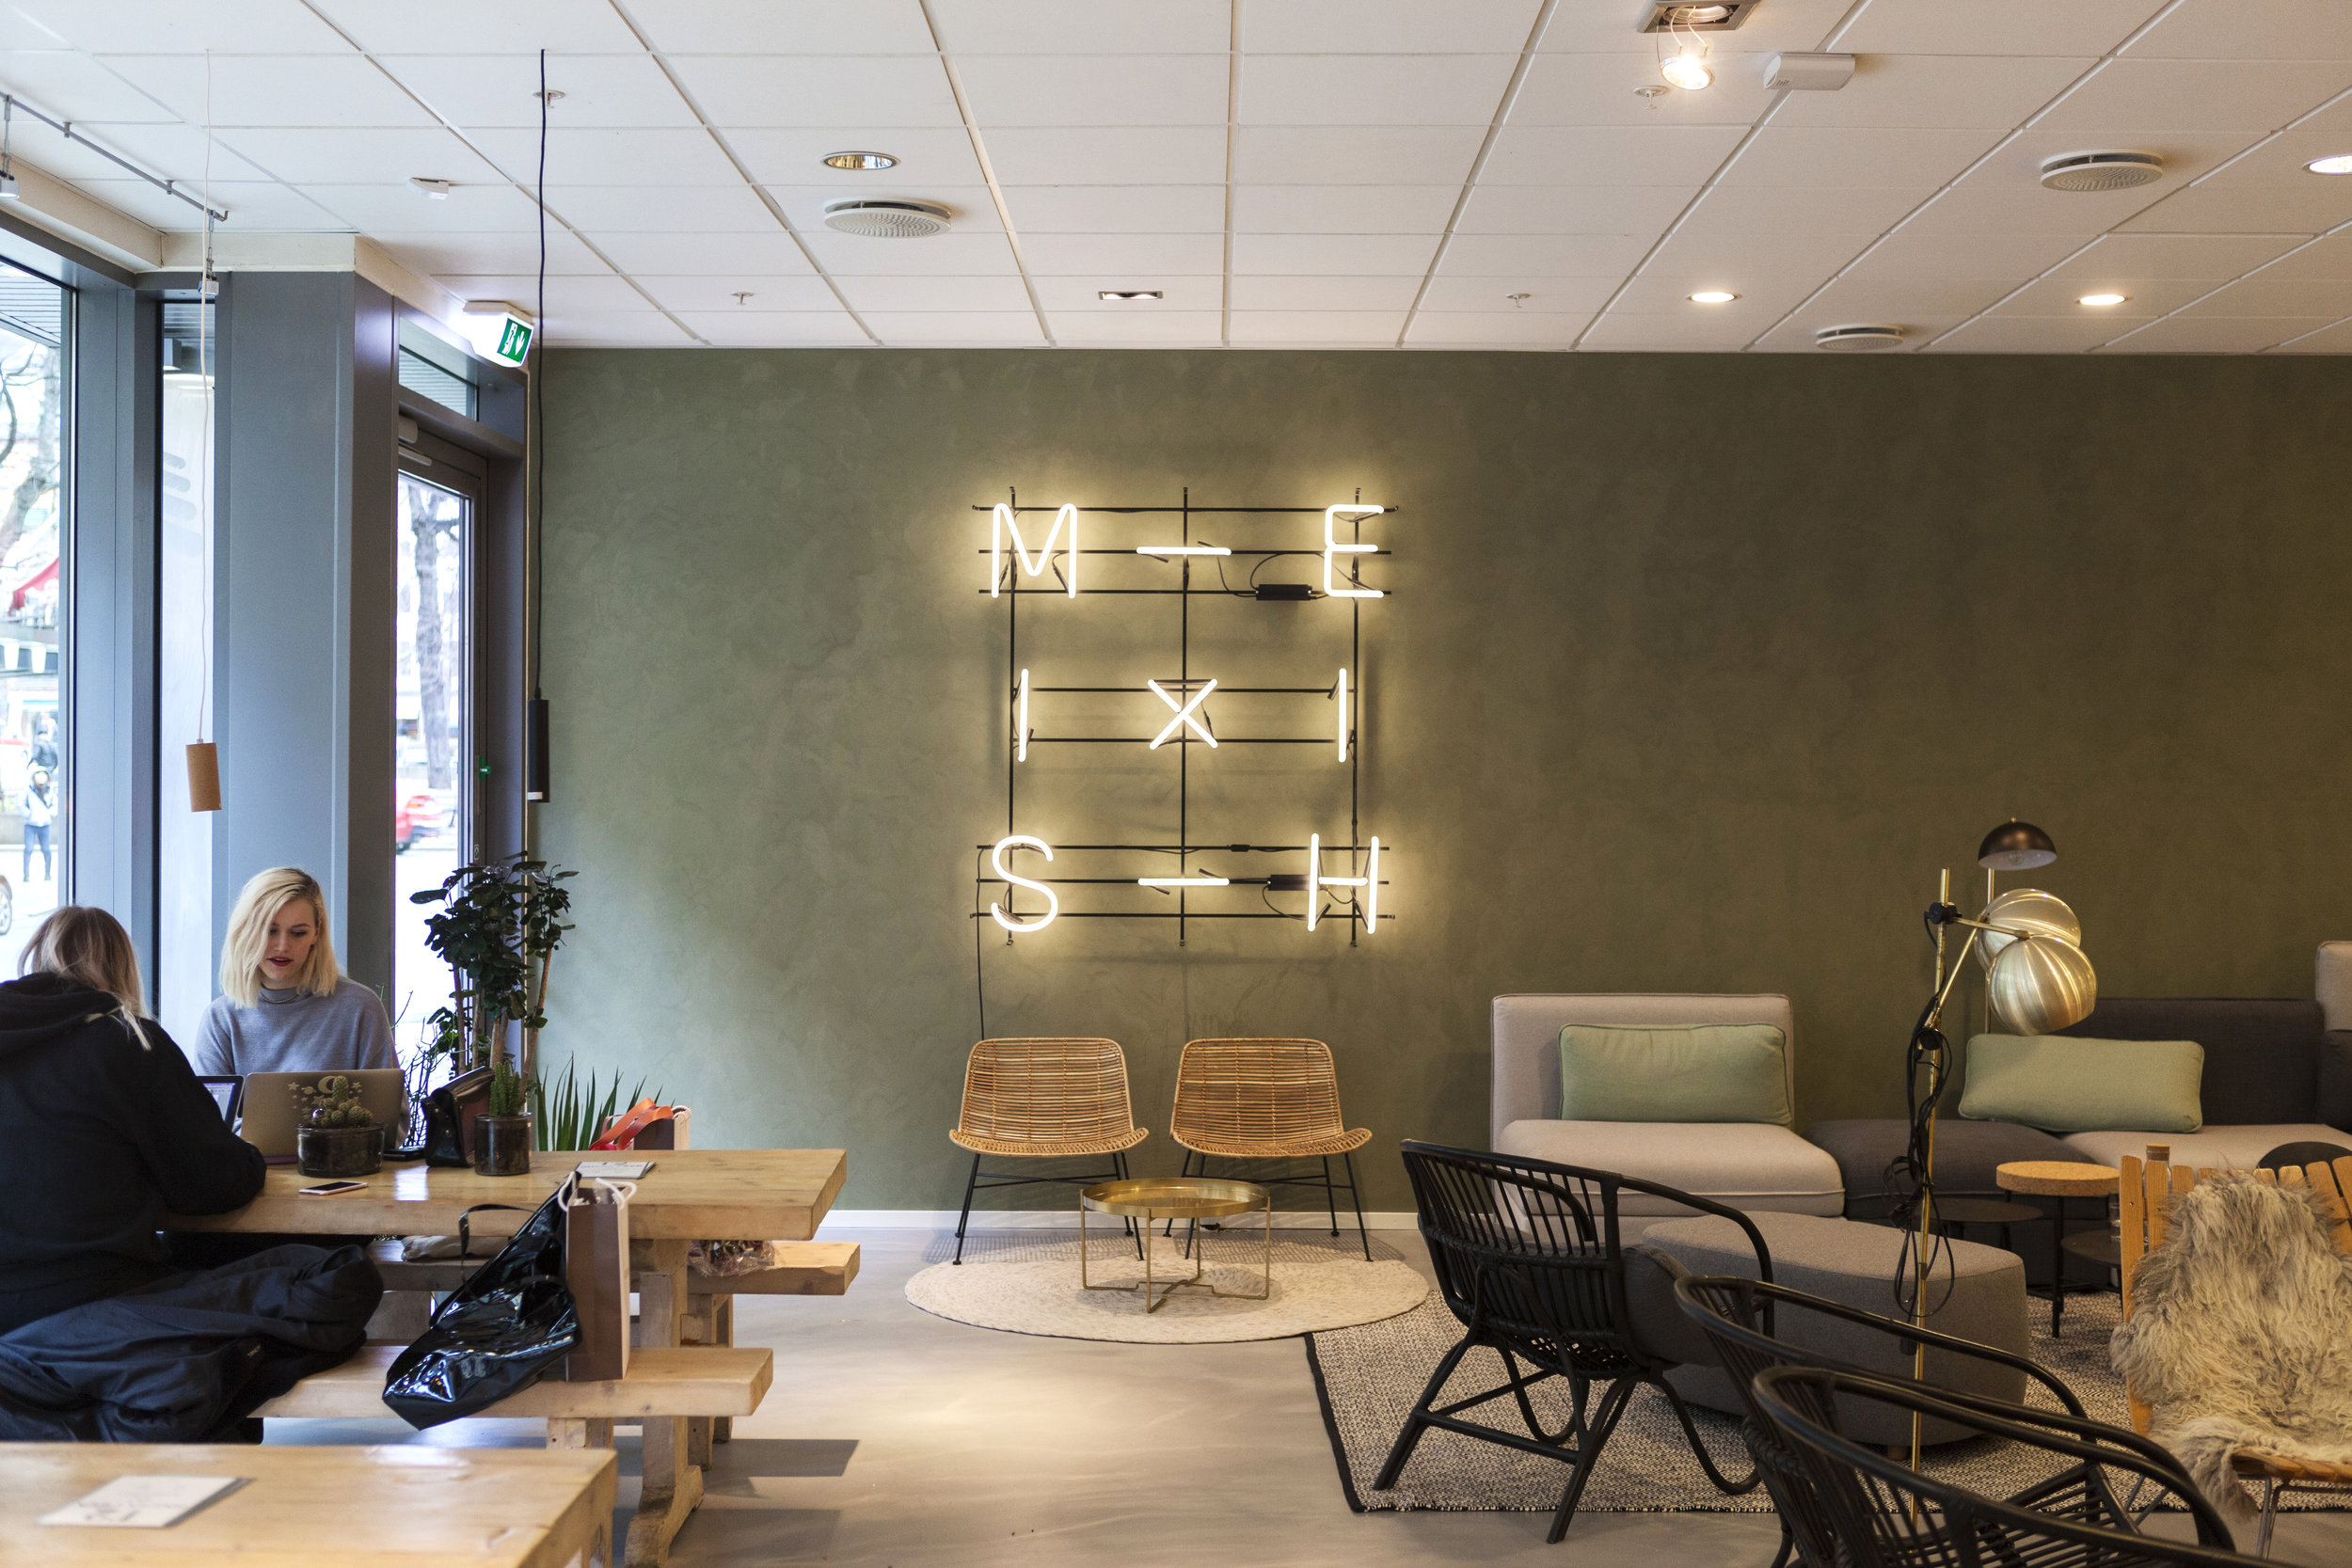 Mesh - co-working space in Oslo, Norway